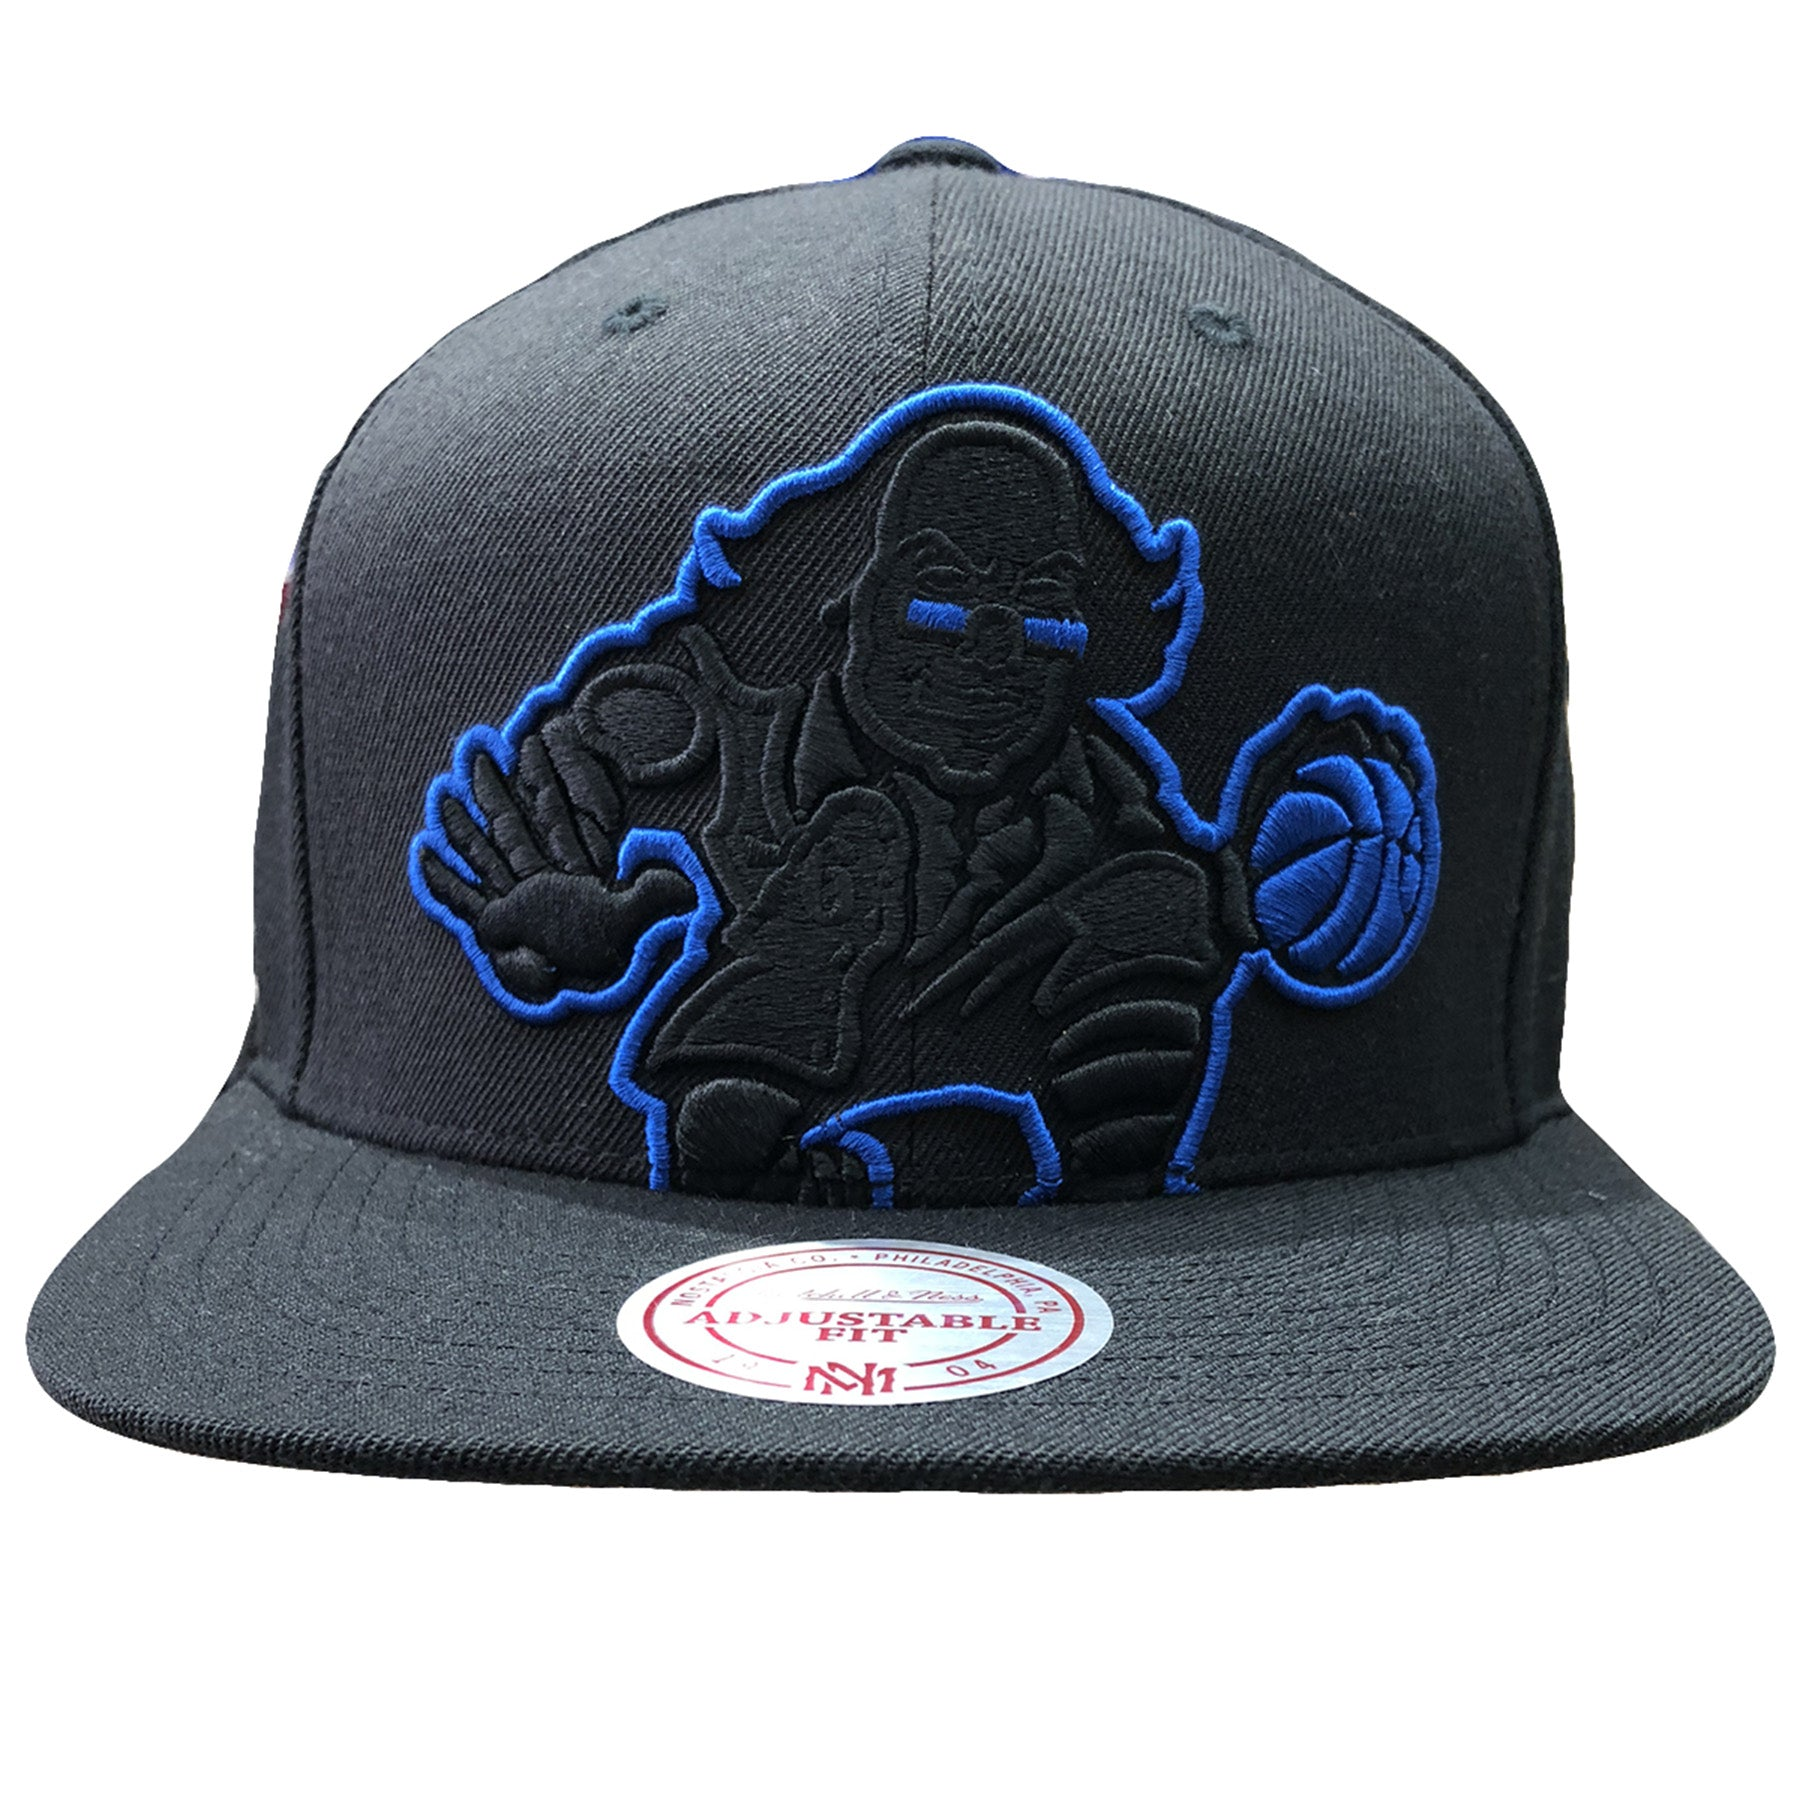 26c193001d5 Embroidered on the front of the Philadelphia 76ers black snapback hat is  the ballin ben franklin